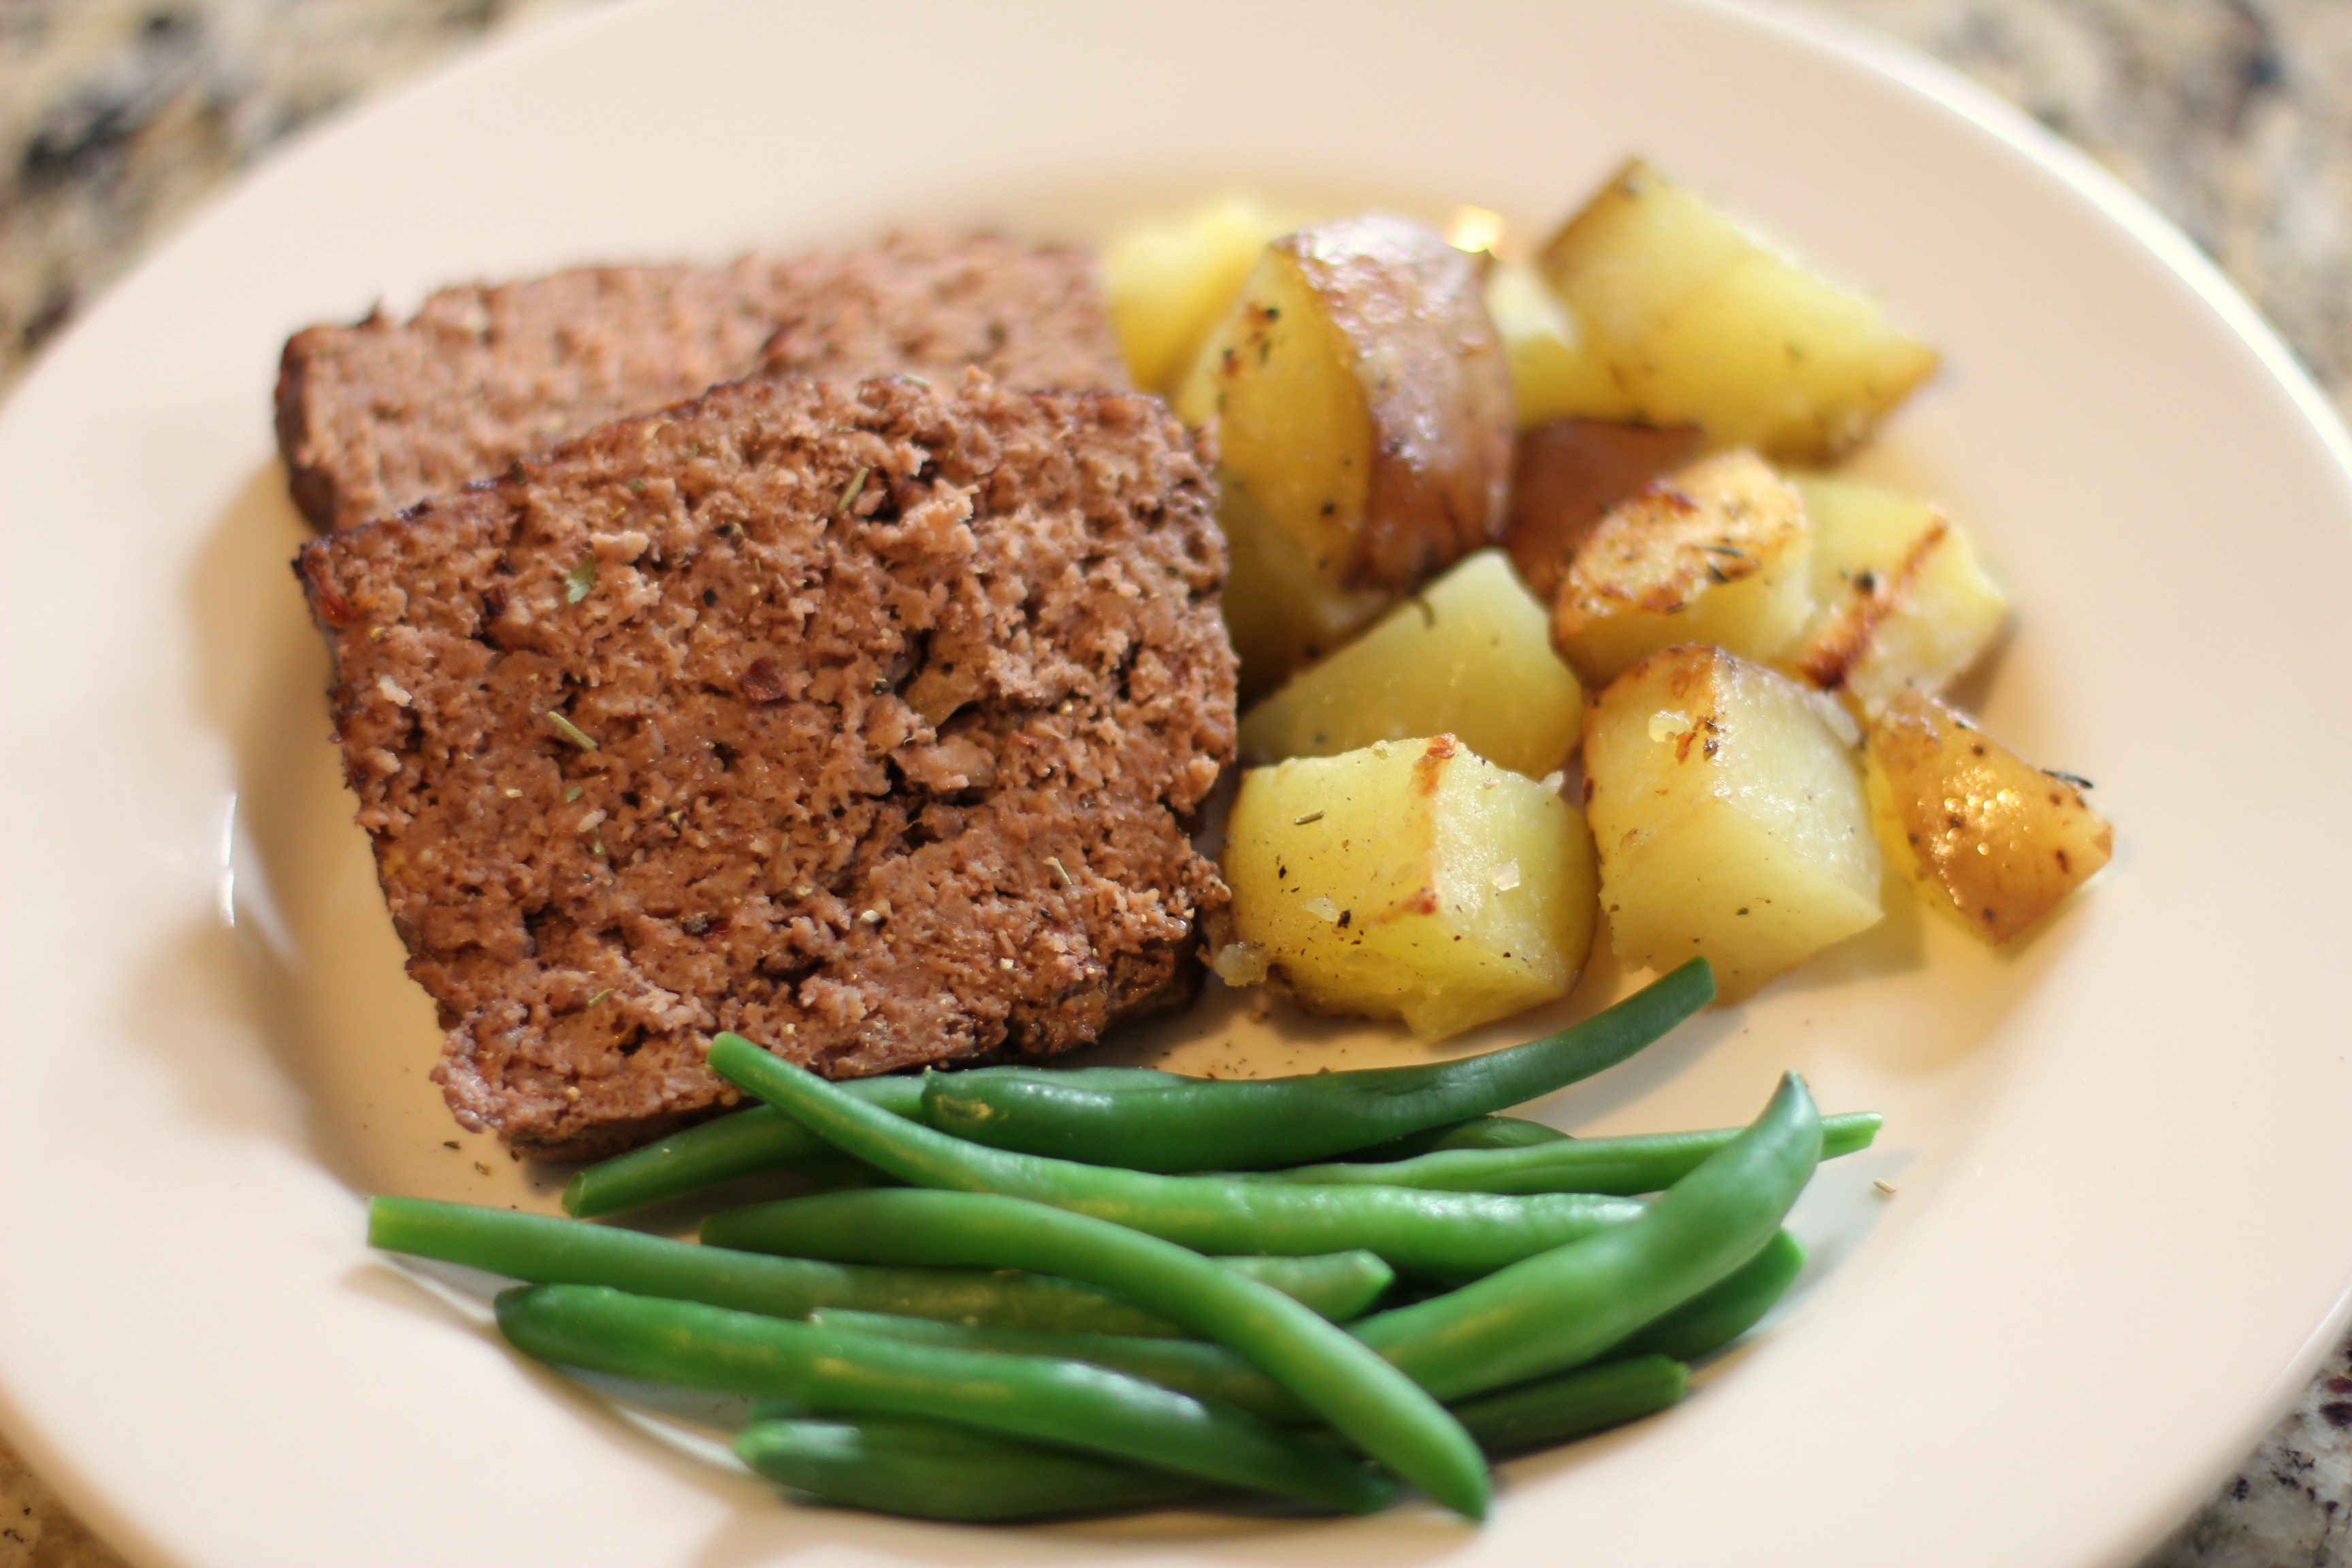 Recipe: How to Make Meatloaf